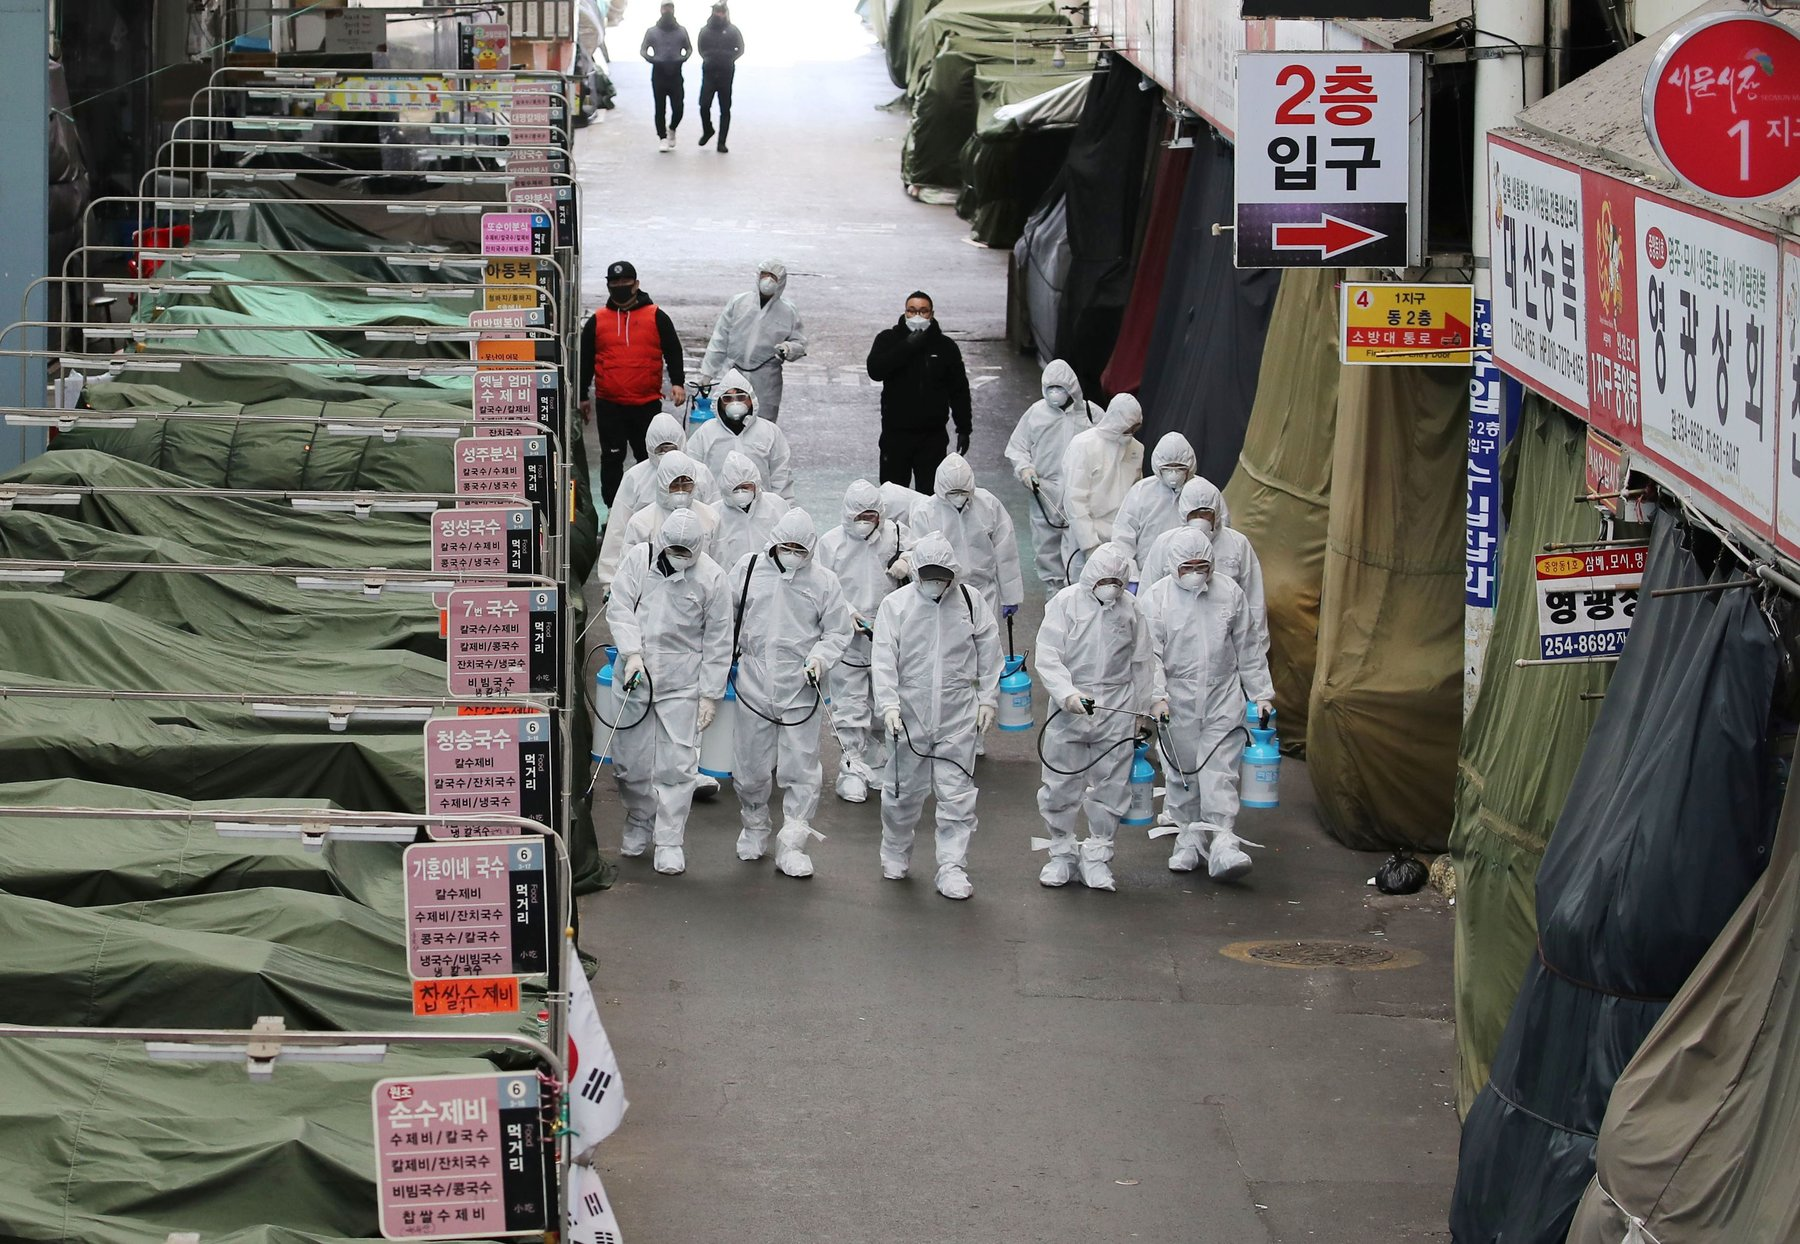 In a Market in Daegu City Spraying Disinfectant Foto Yonhap - Getty Images